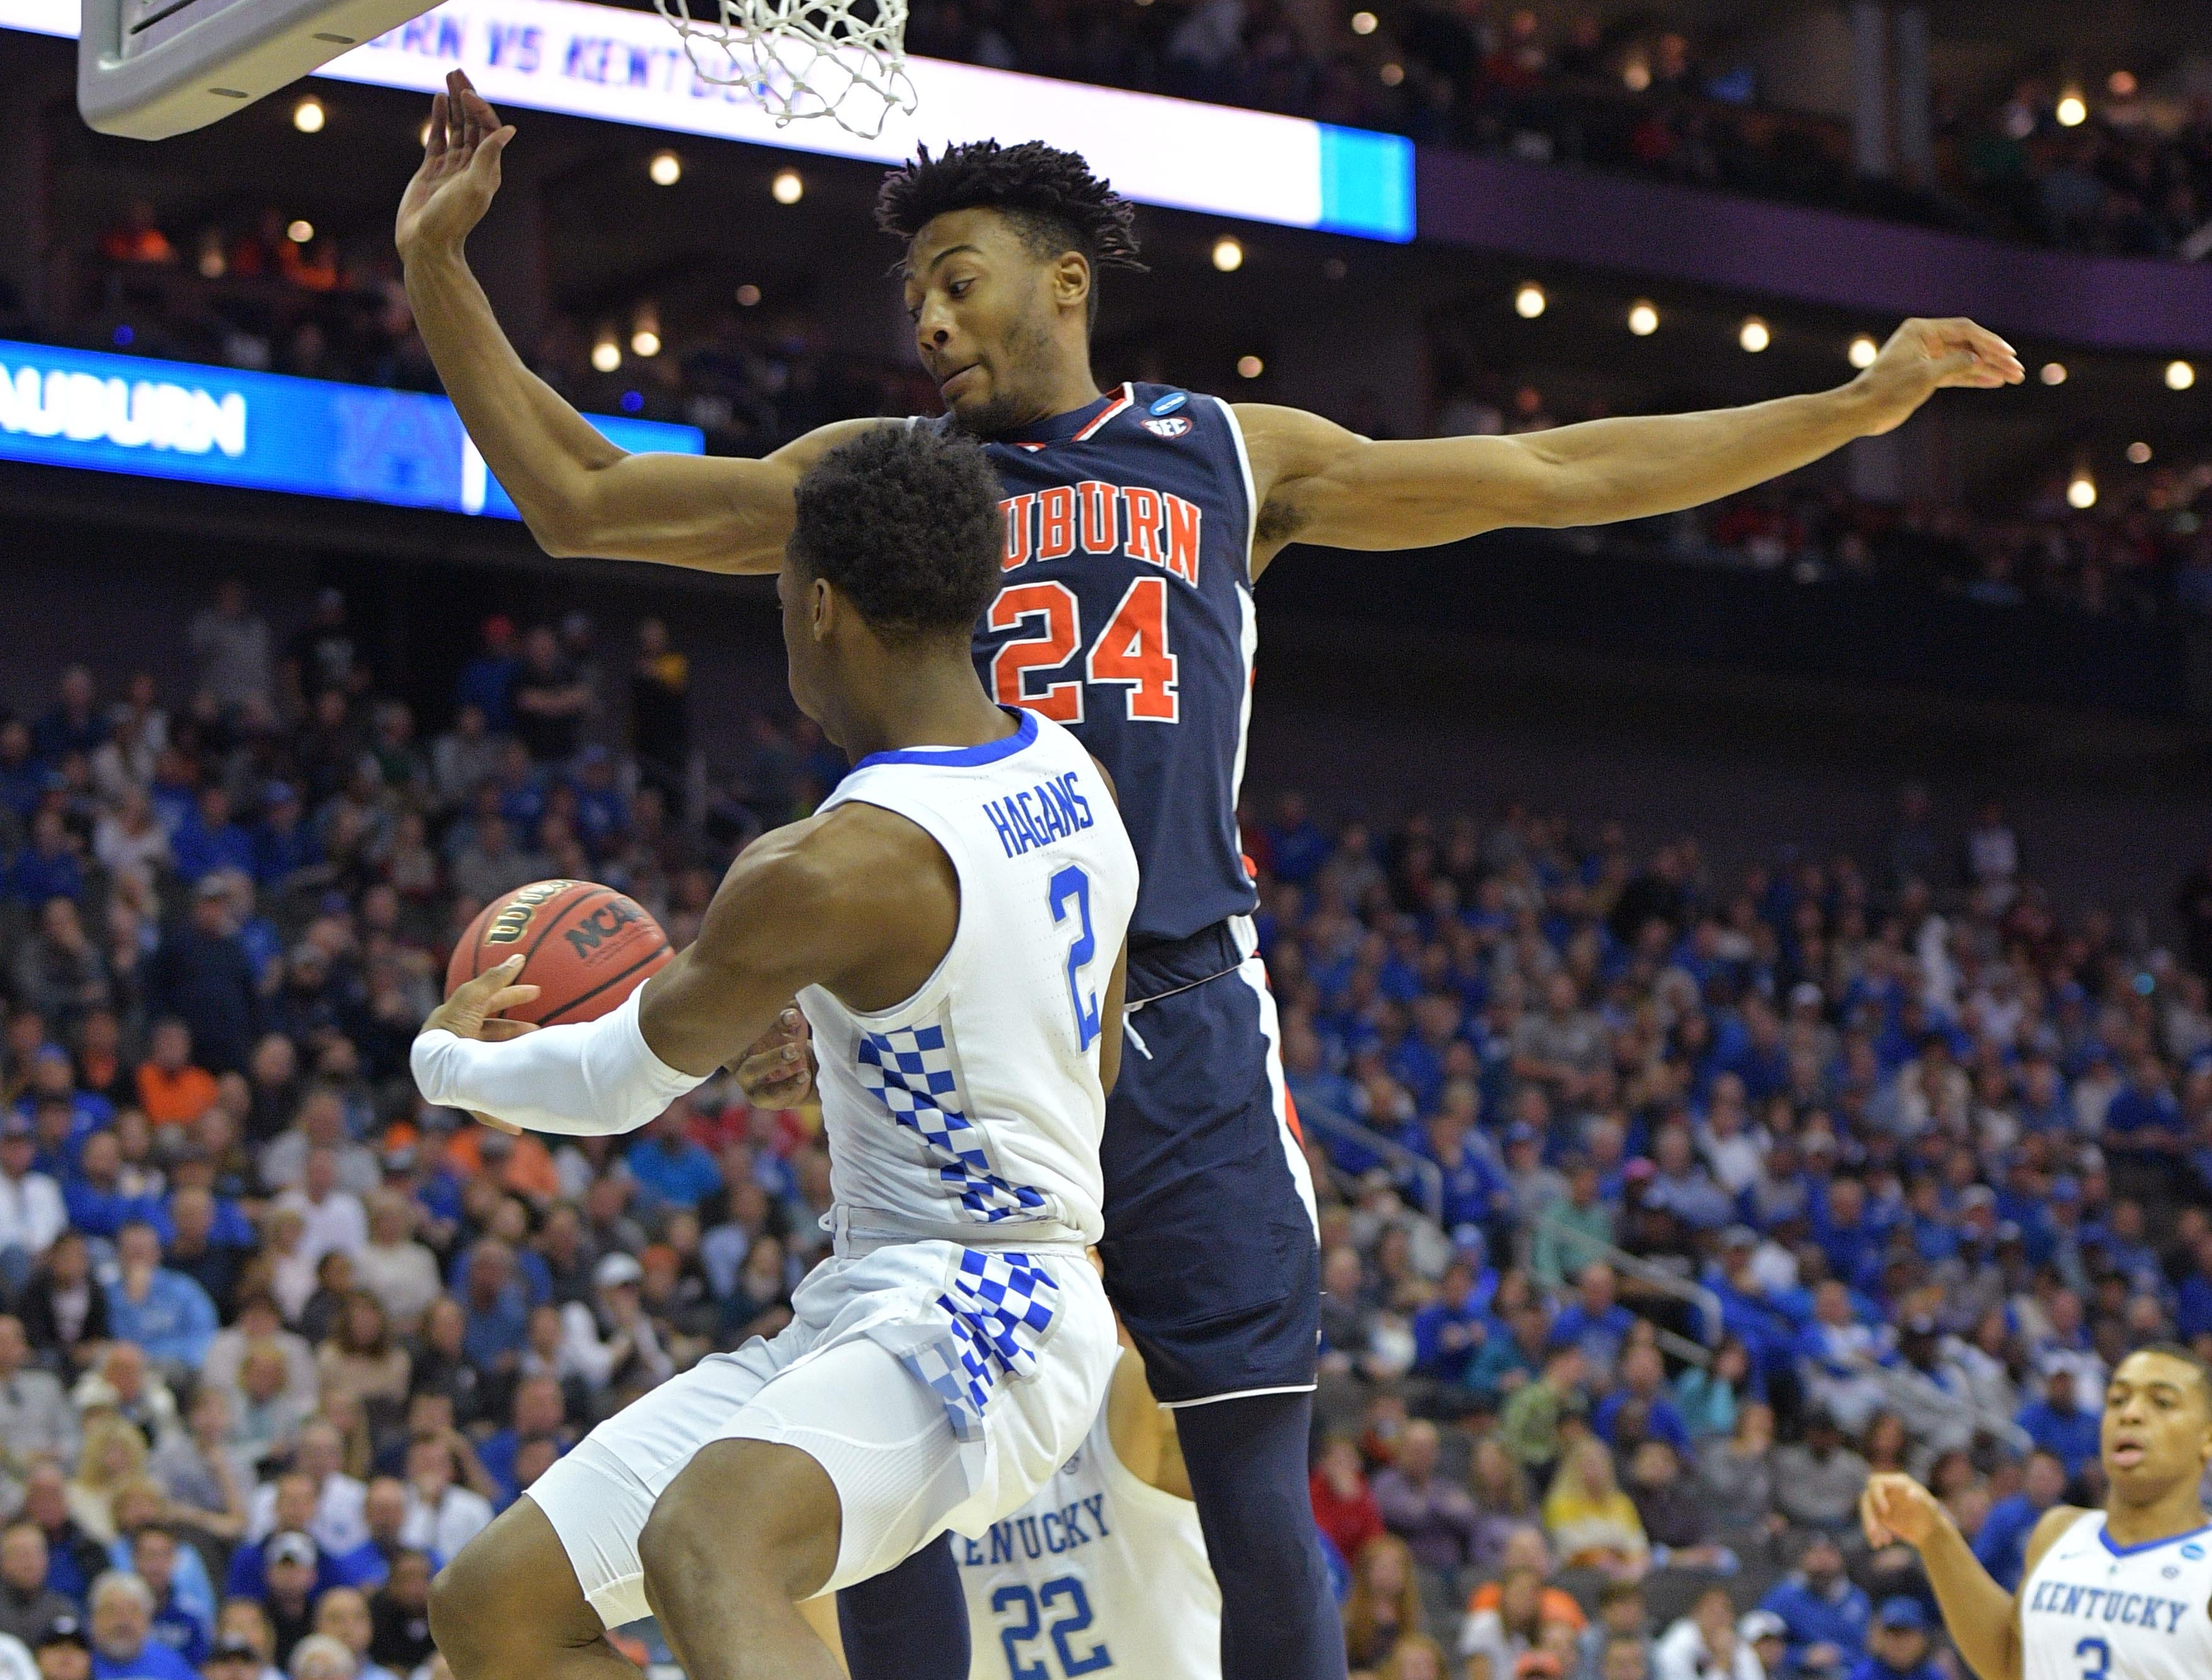 Mar 31, 2019; Kansas City, MO, United States; Kentucky Wildcats guard Ashton Hagans (2) passes the ball away from Auburn Tigers forward Anfernee McLemore (24) during the first half in the championship game of the midwest regional of the 2019 NCAA Tournament at Sprint Center. Mandatory Credit: Denny Medley-USA TODAY Sports